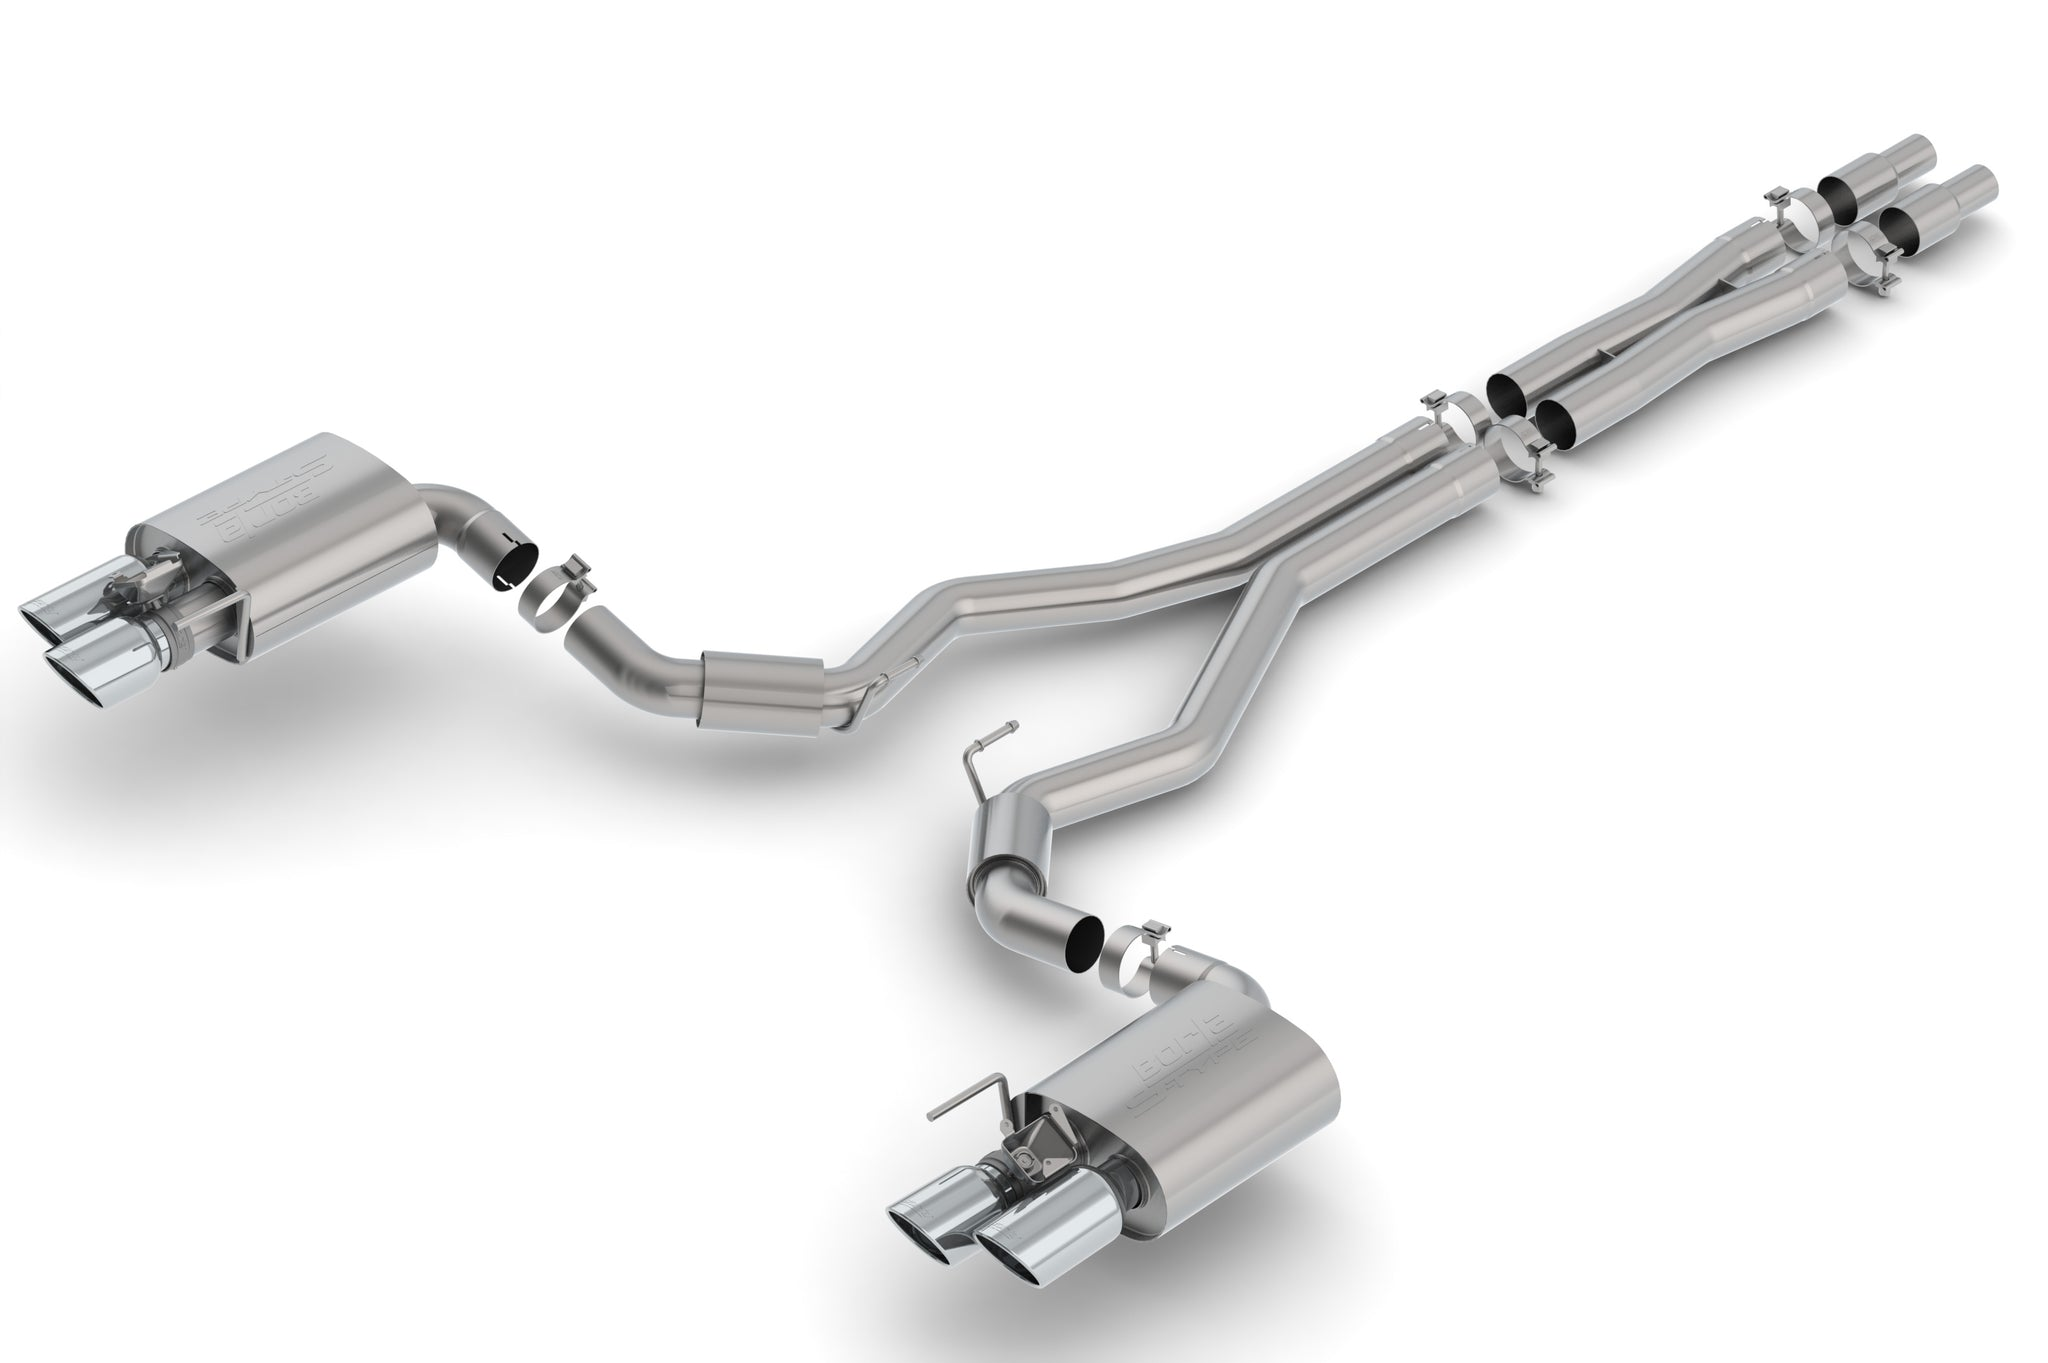 Borla Atak Cat Back Exhaust System W Valves 2015 2018 Ford Mustang